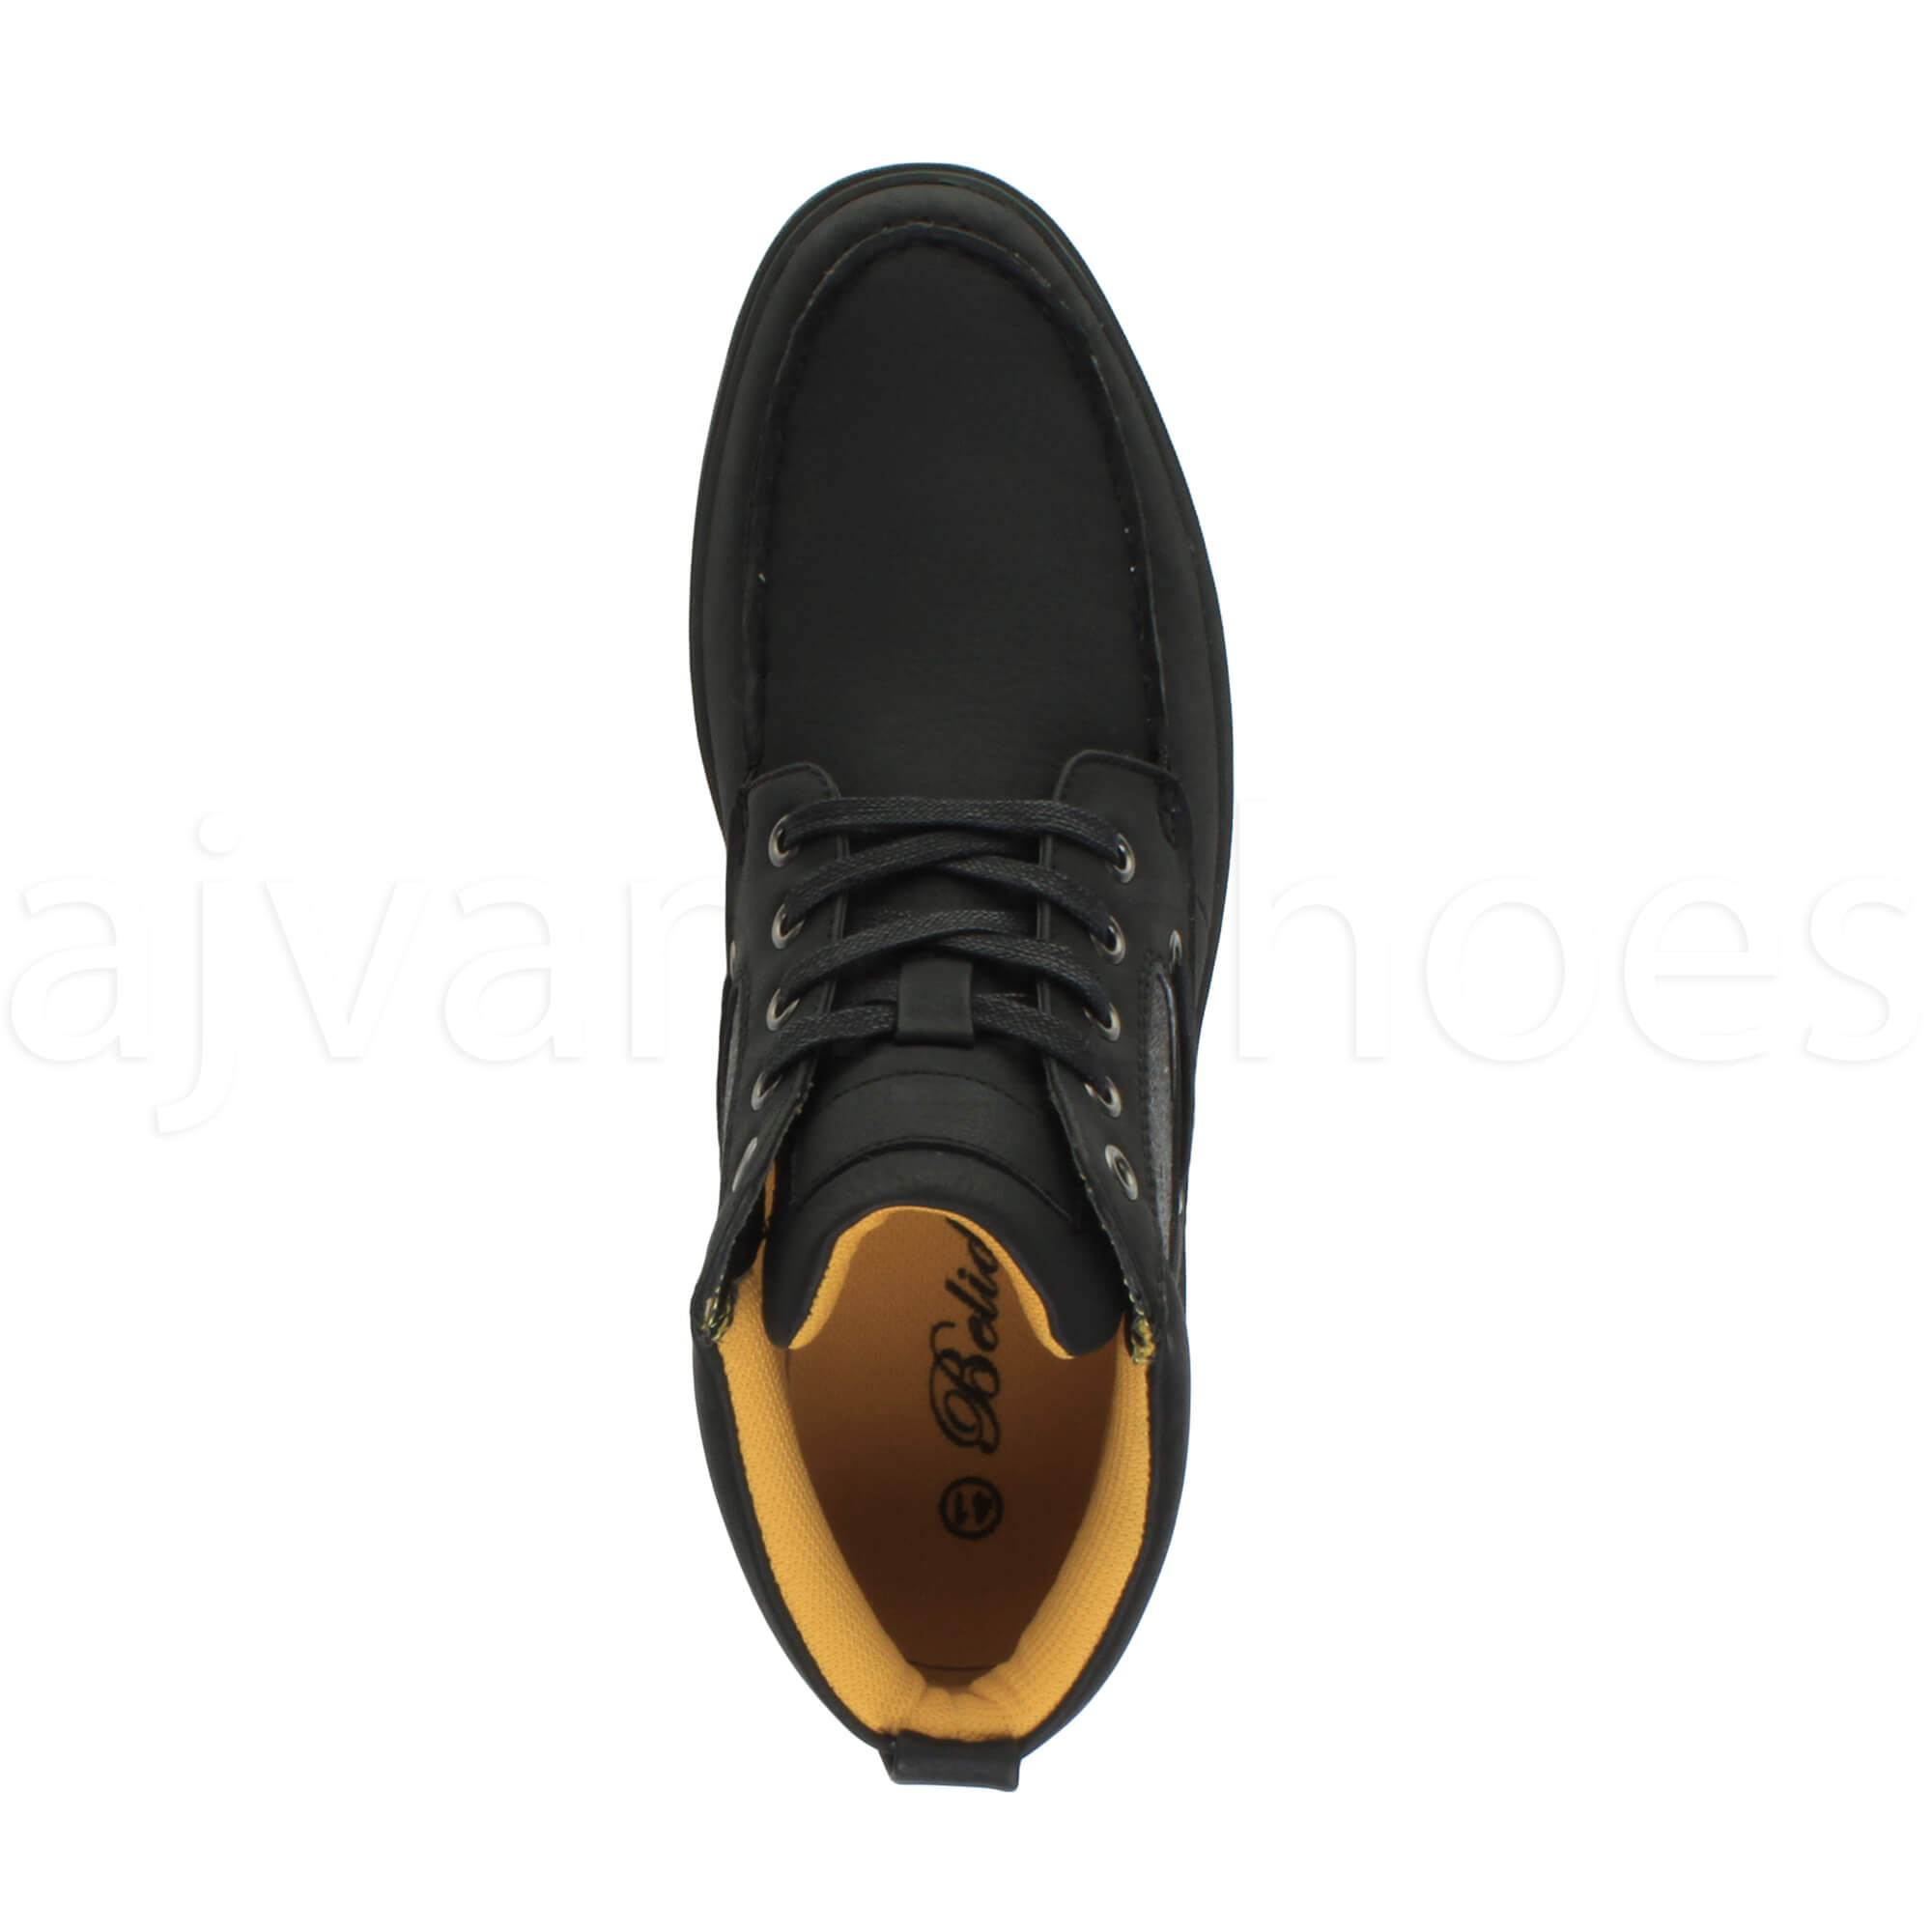 MENS-FLAT-LACE-UP-CASUAL-BOAT-CONTRAST-HI-TOP-TRAINERS-ANKLE-BOOTS-PUMPS-SIZE thumbnail 7